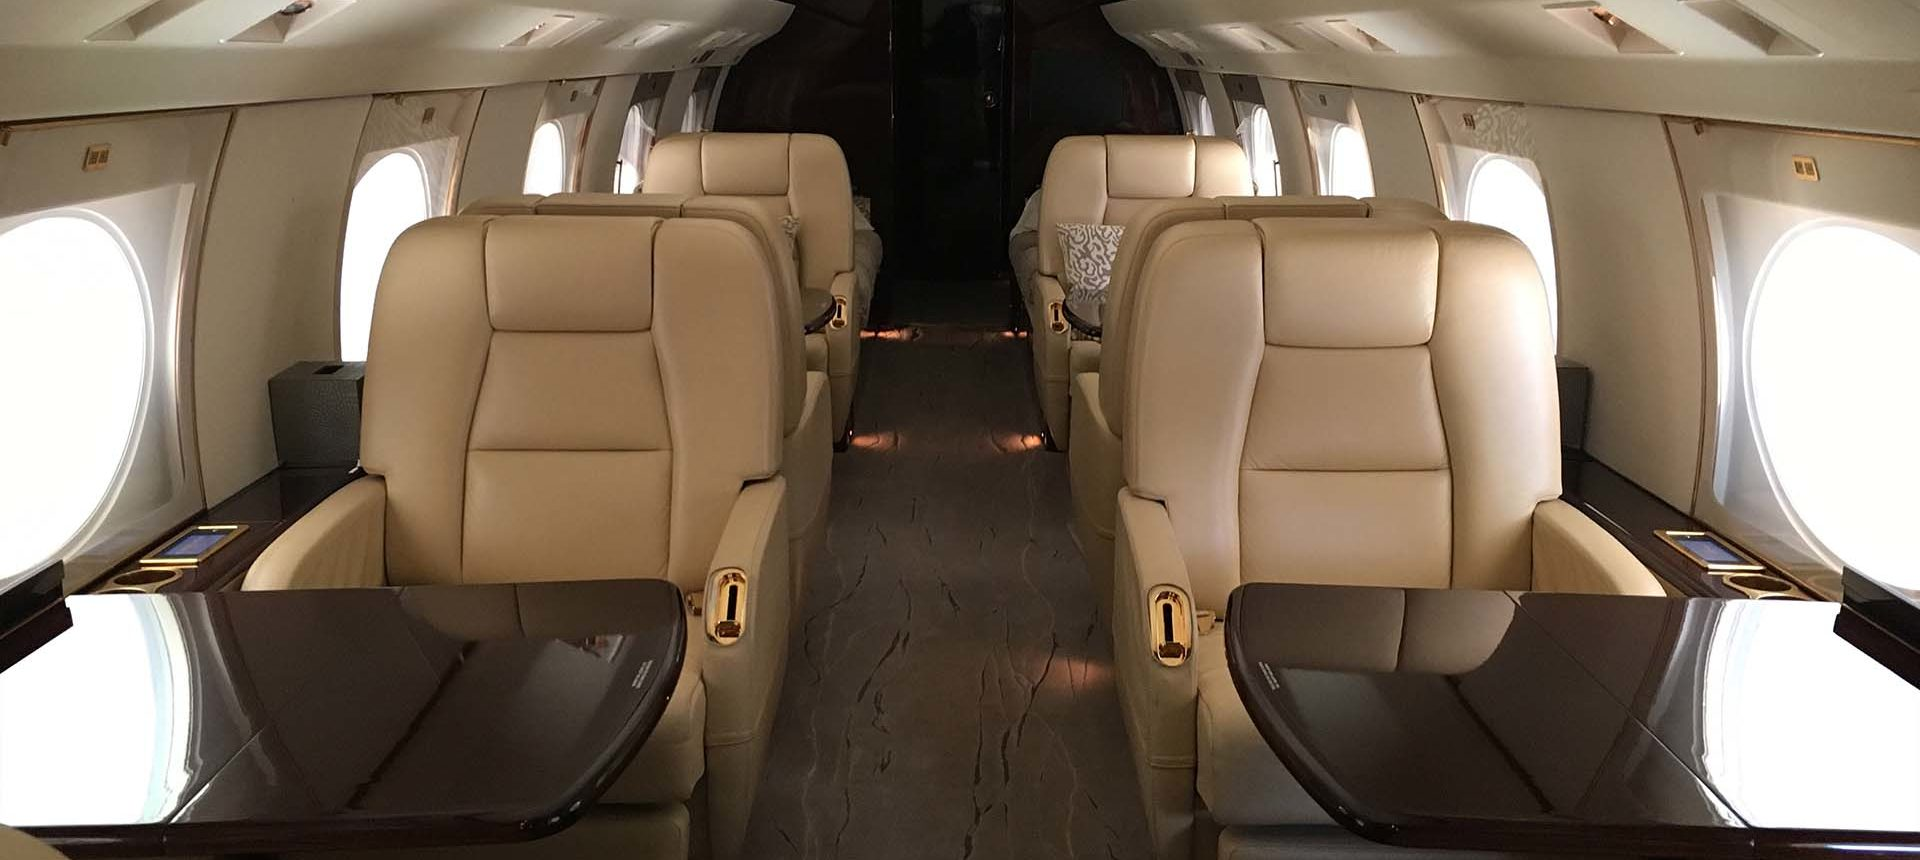 G450-1 Forward cabin looking aft